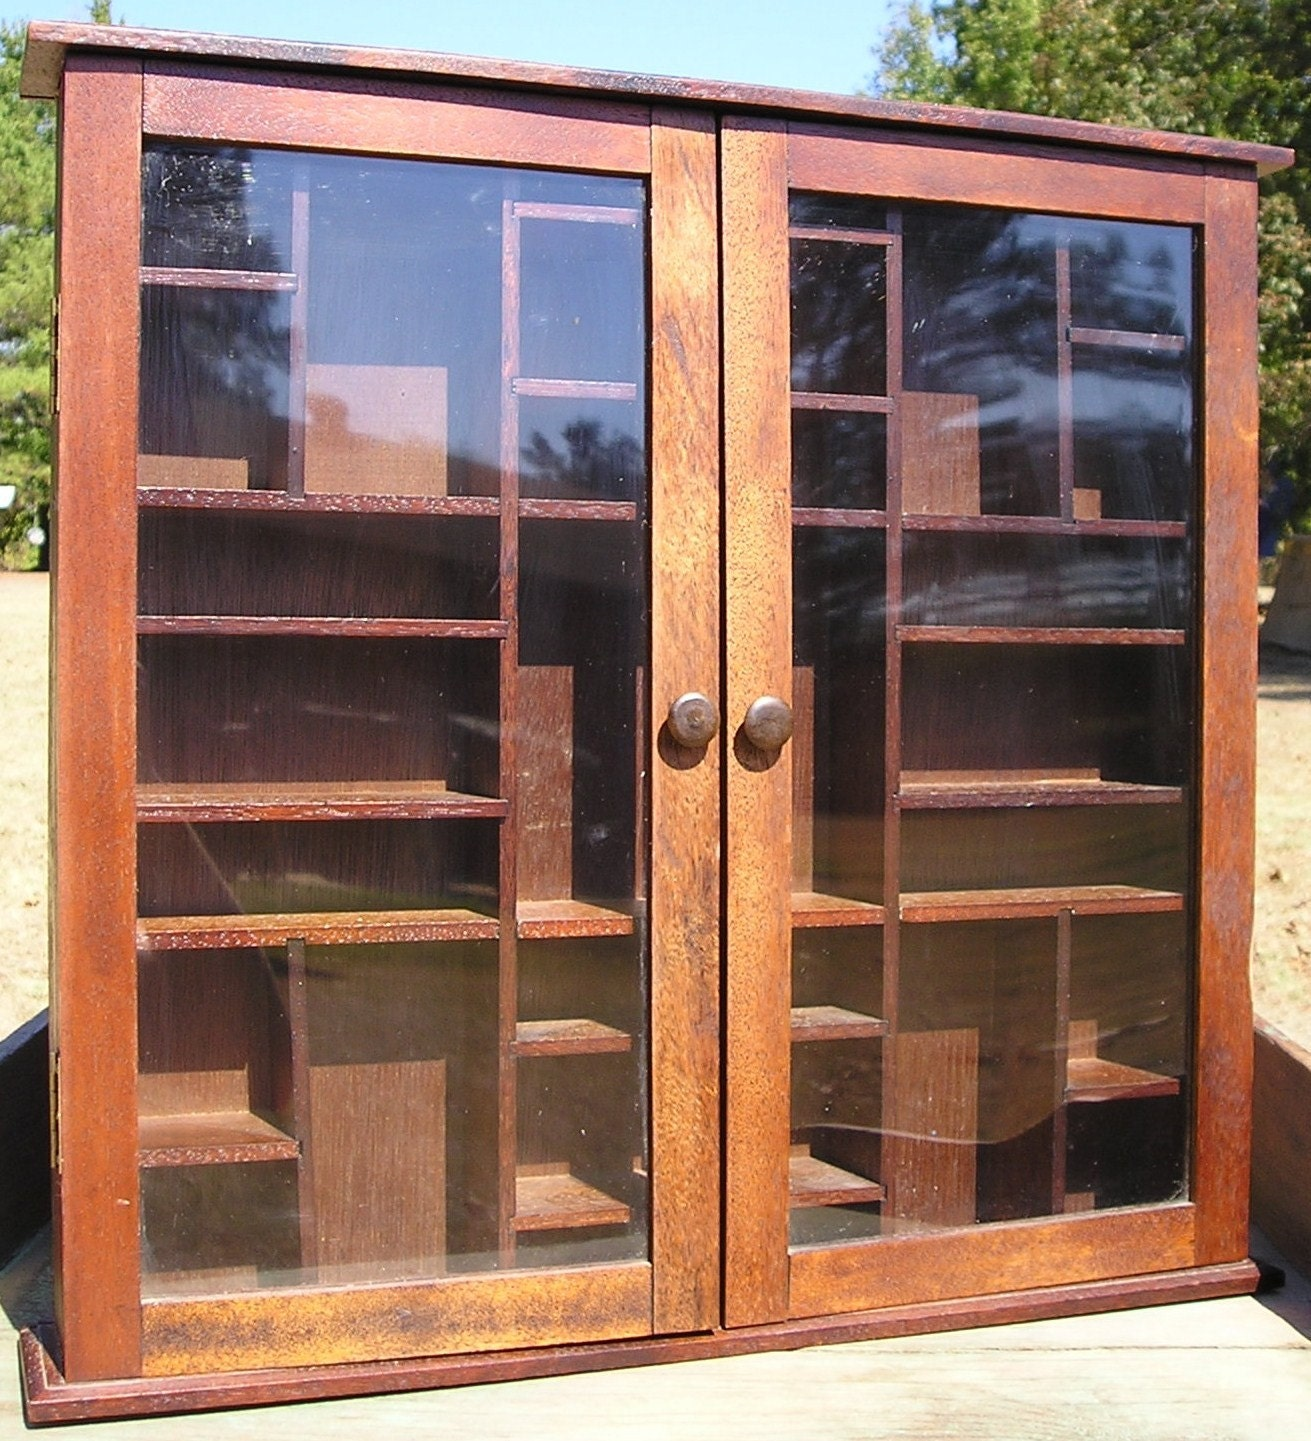 Wood Shadow Box Wooden Display Case Curio Curiosities Craft